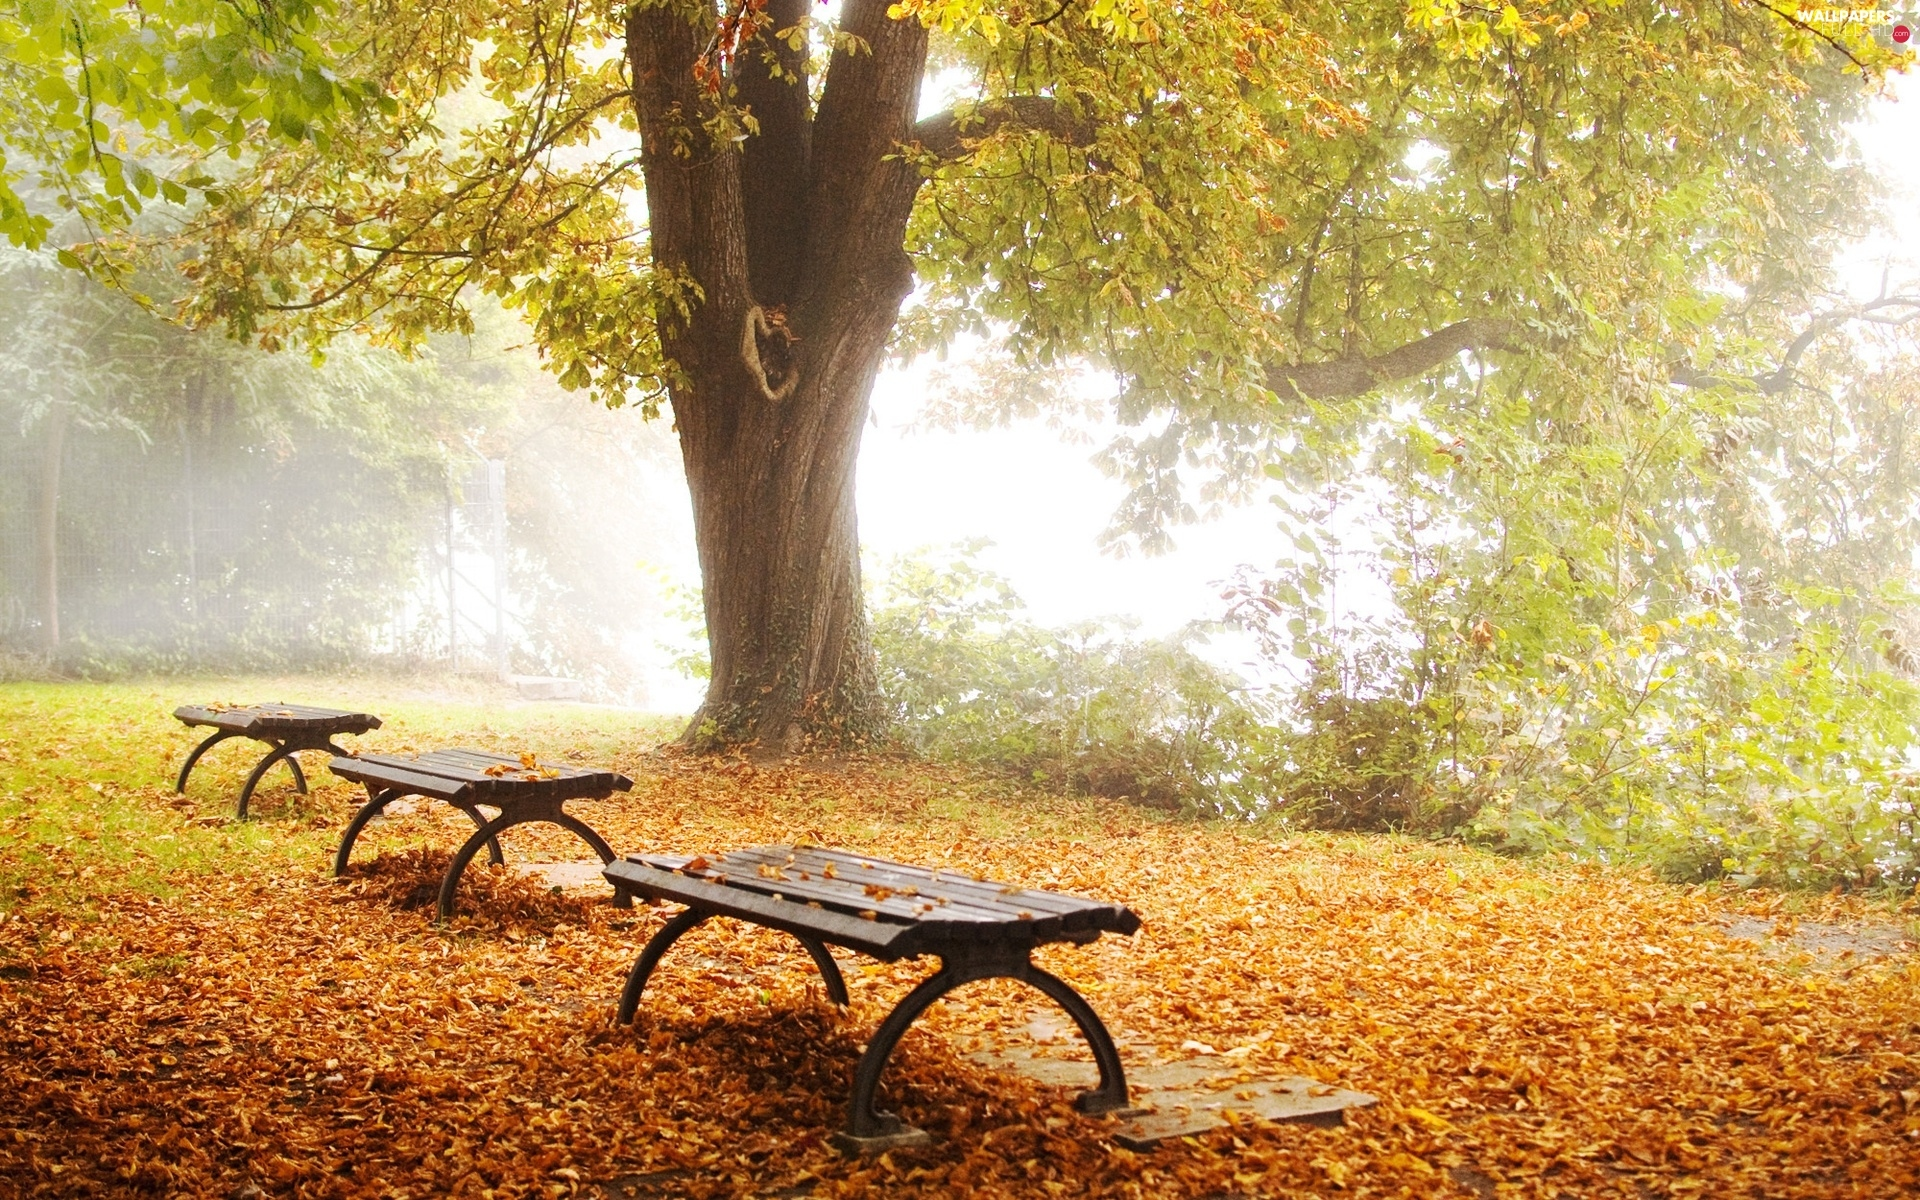 Leaf, bench, forest, autumn, car in the meadow